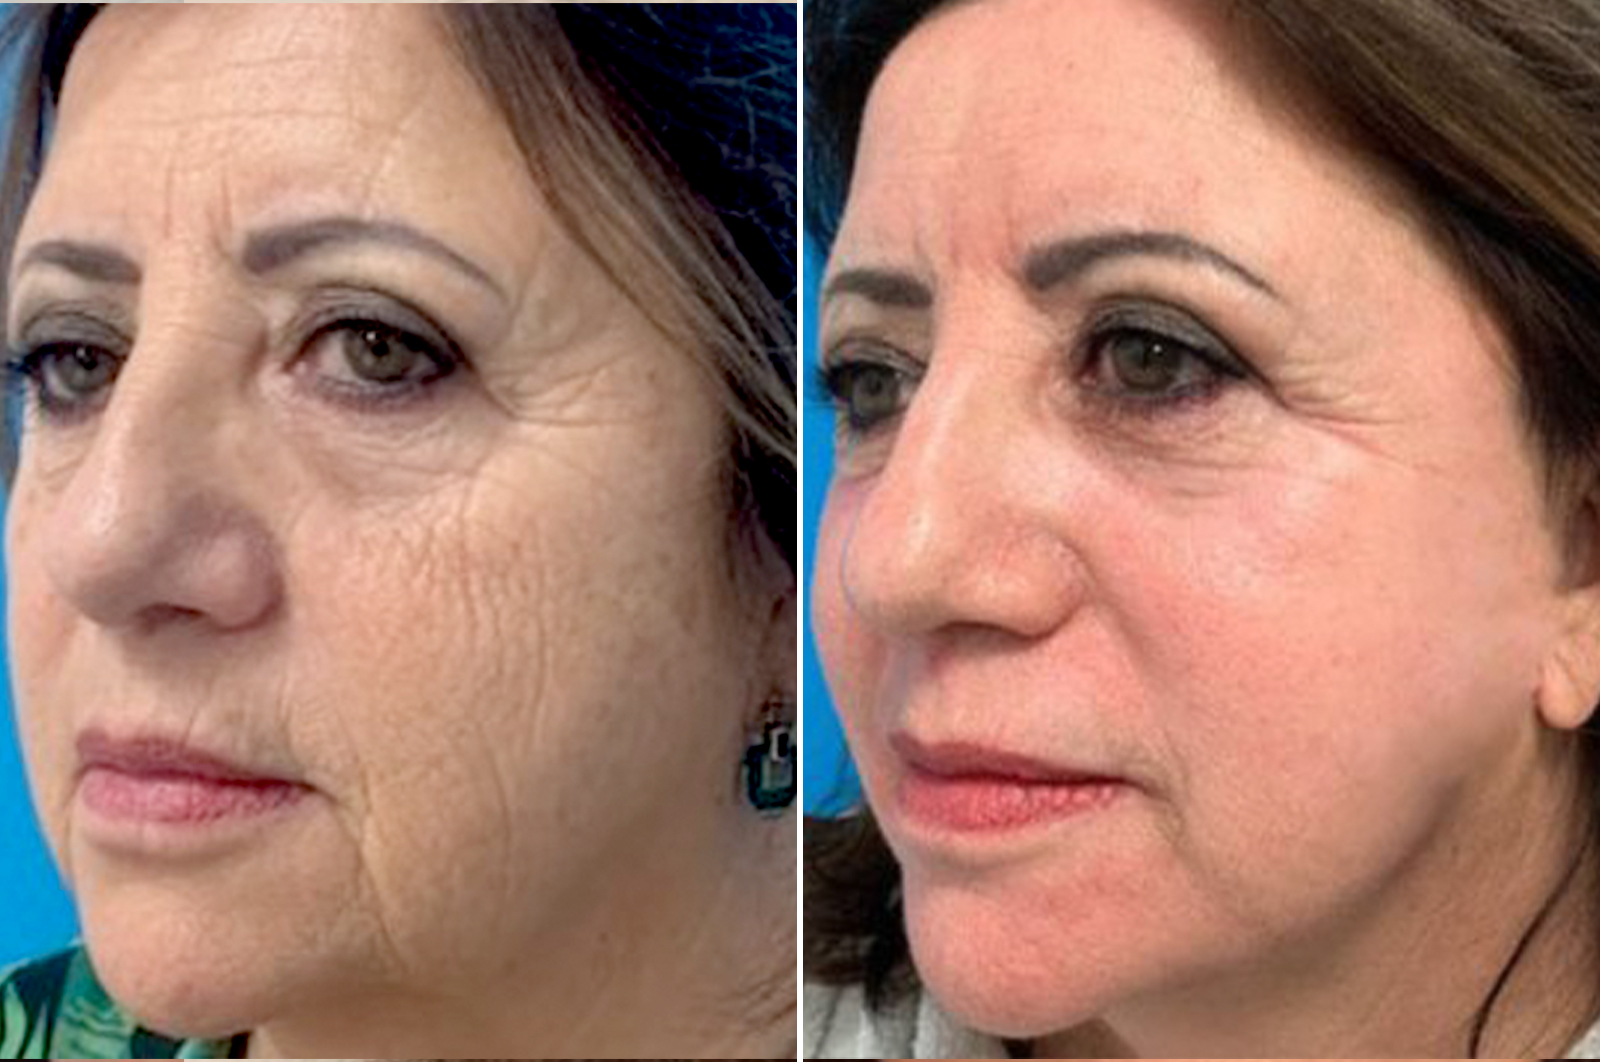 Facial surgery chemical peel before and after treatment in antwerp